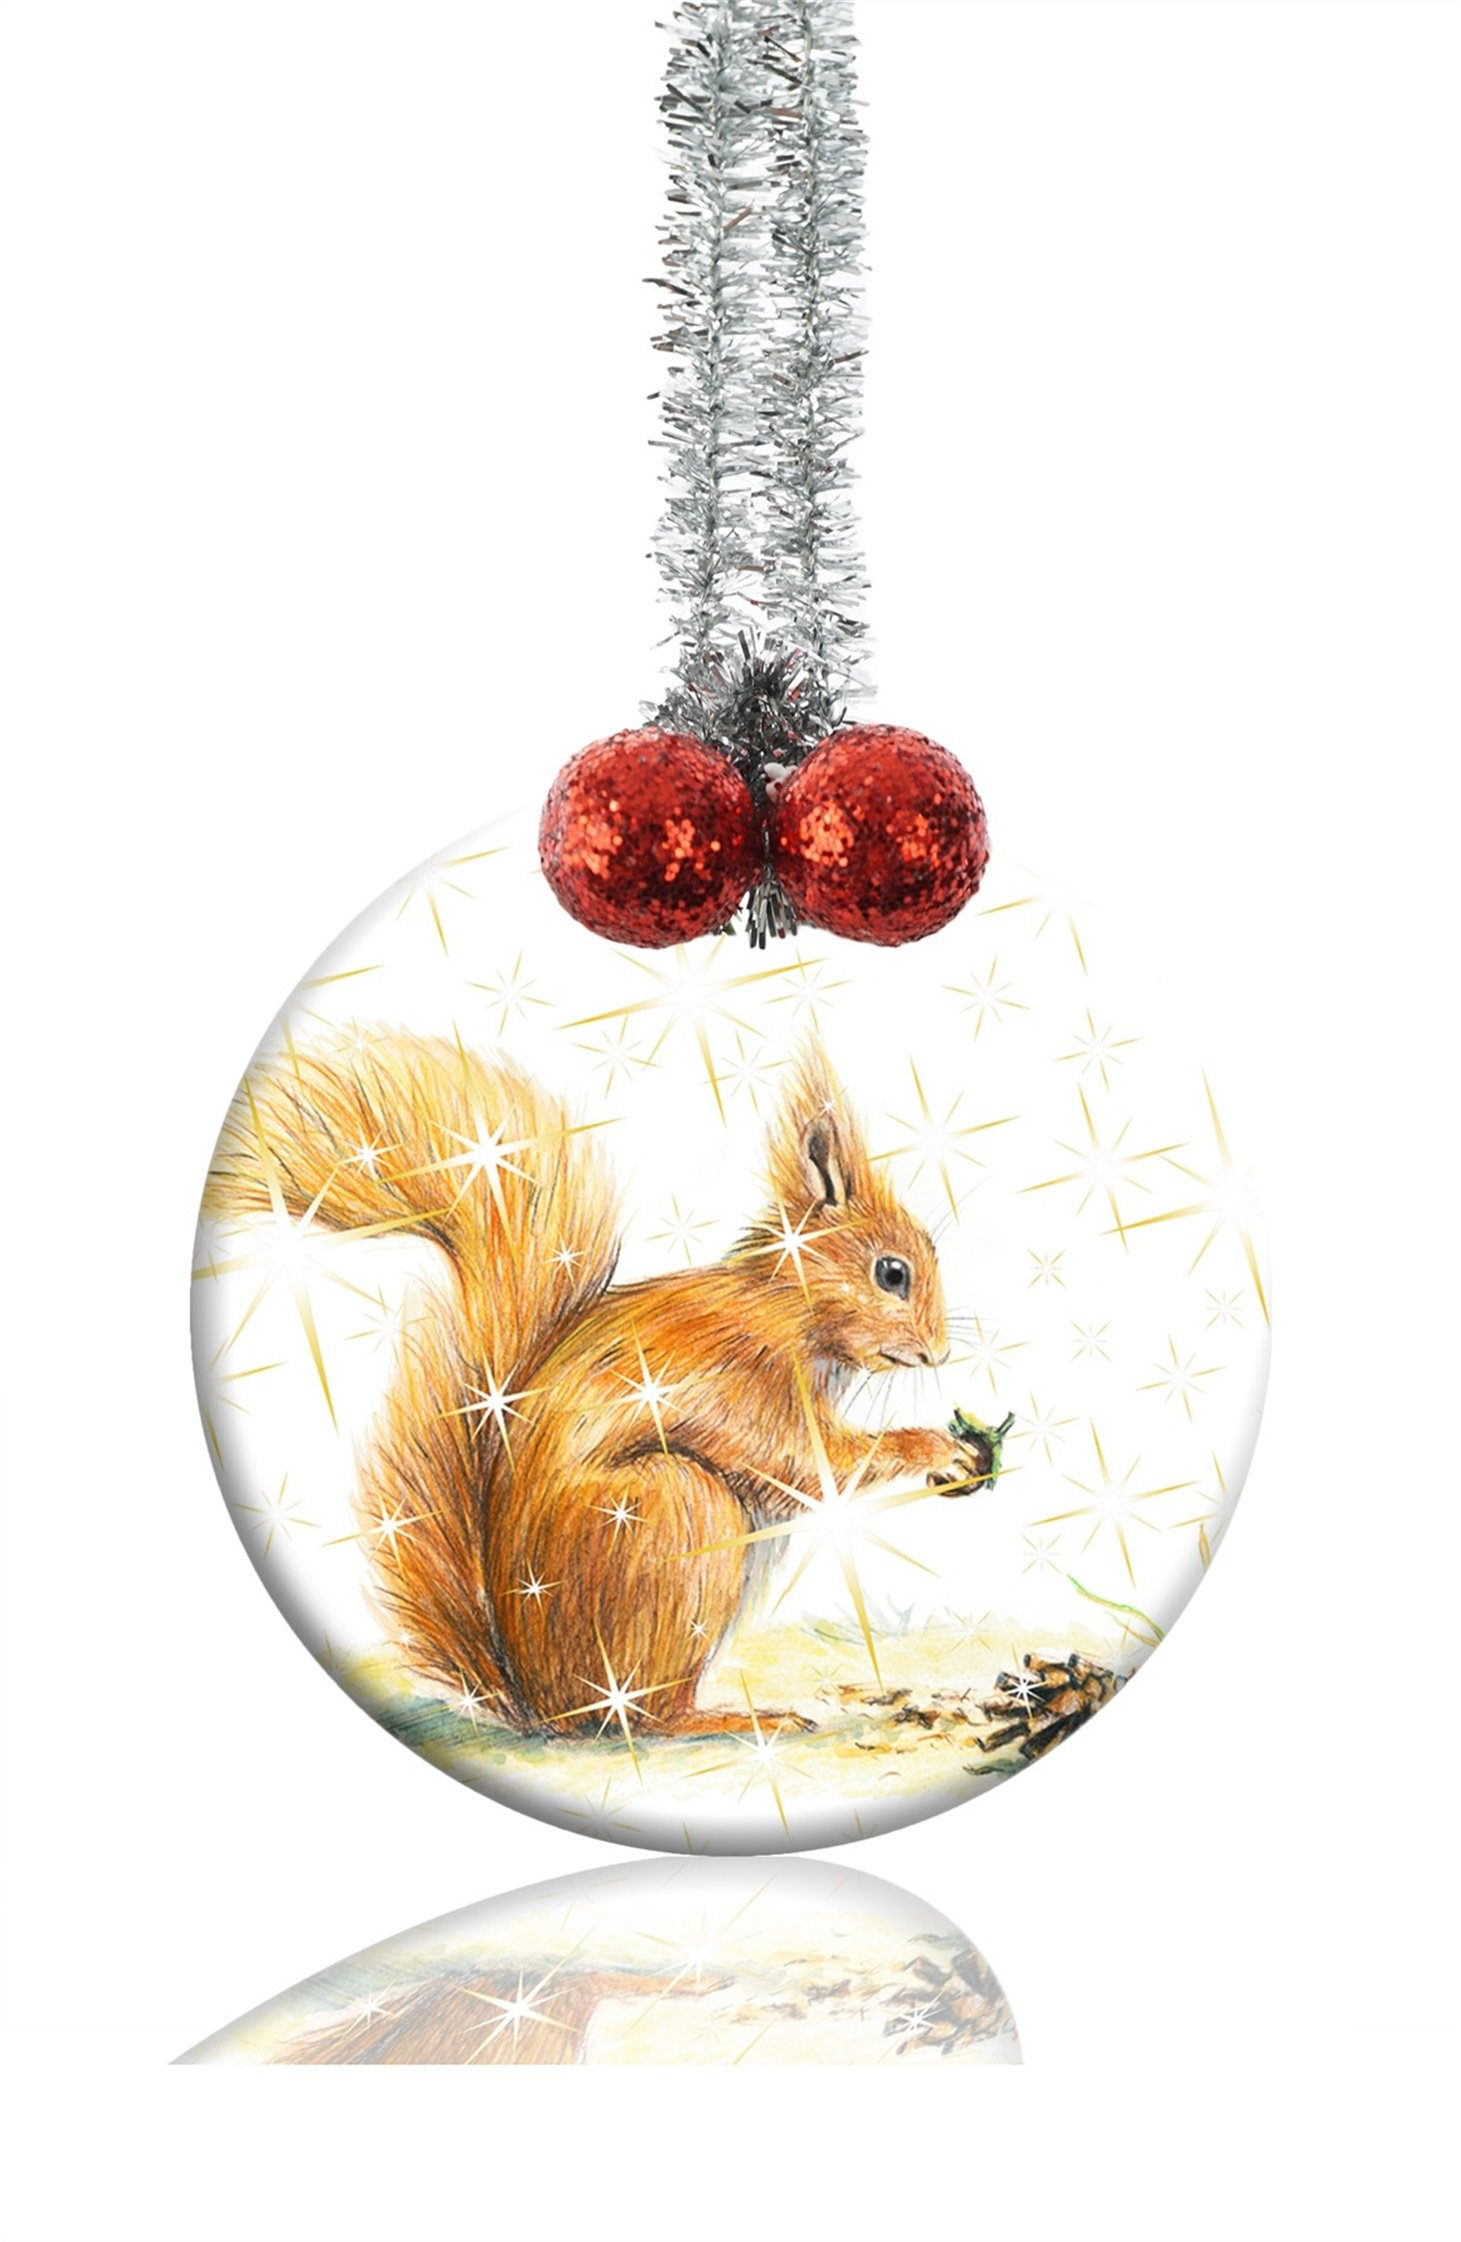 GDEE Custom Squirrel wild animals Personalized Round Porcelain Ornaments Christmas Ornaments Home Decoration